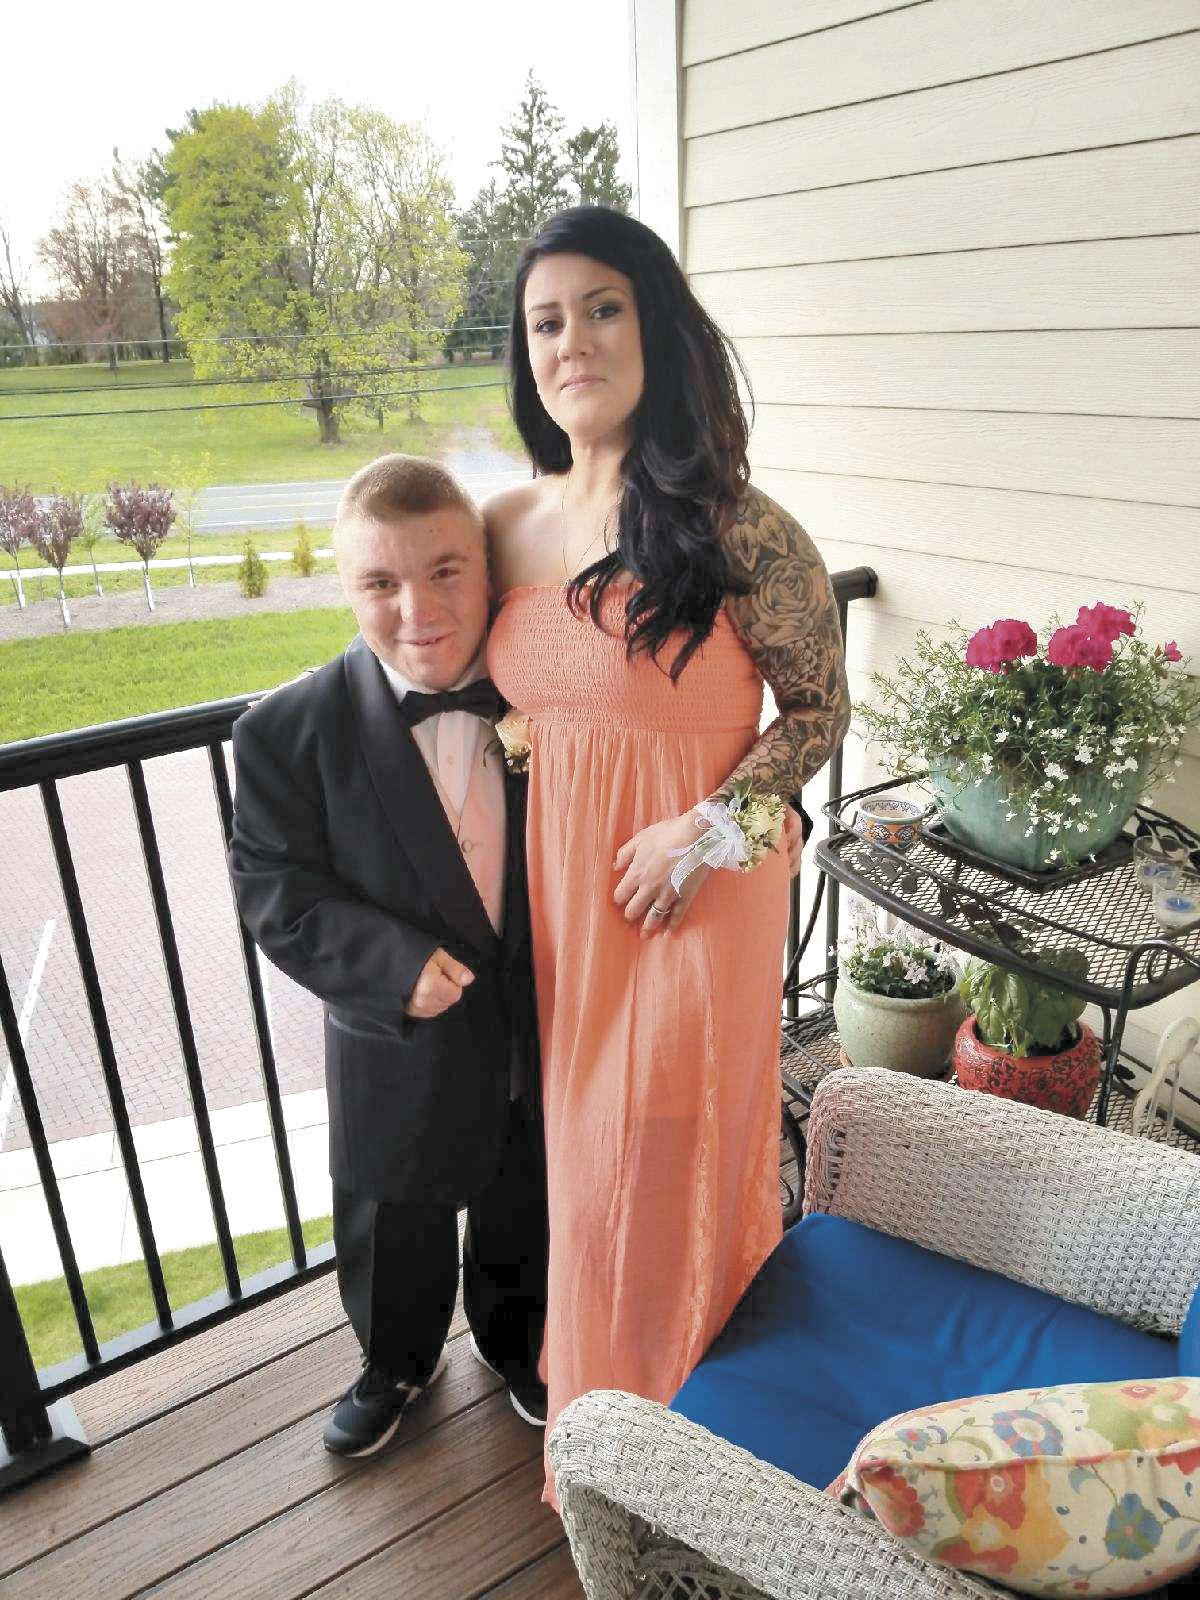 Limo service, waitress join together to help Handley student have his prom night